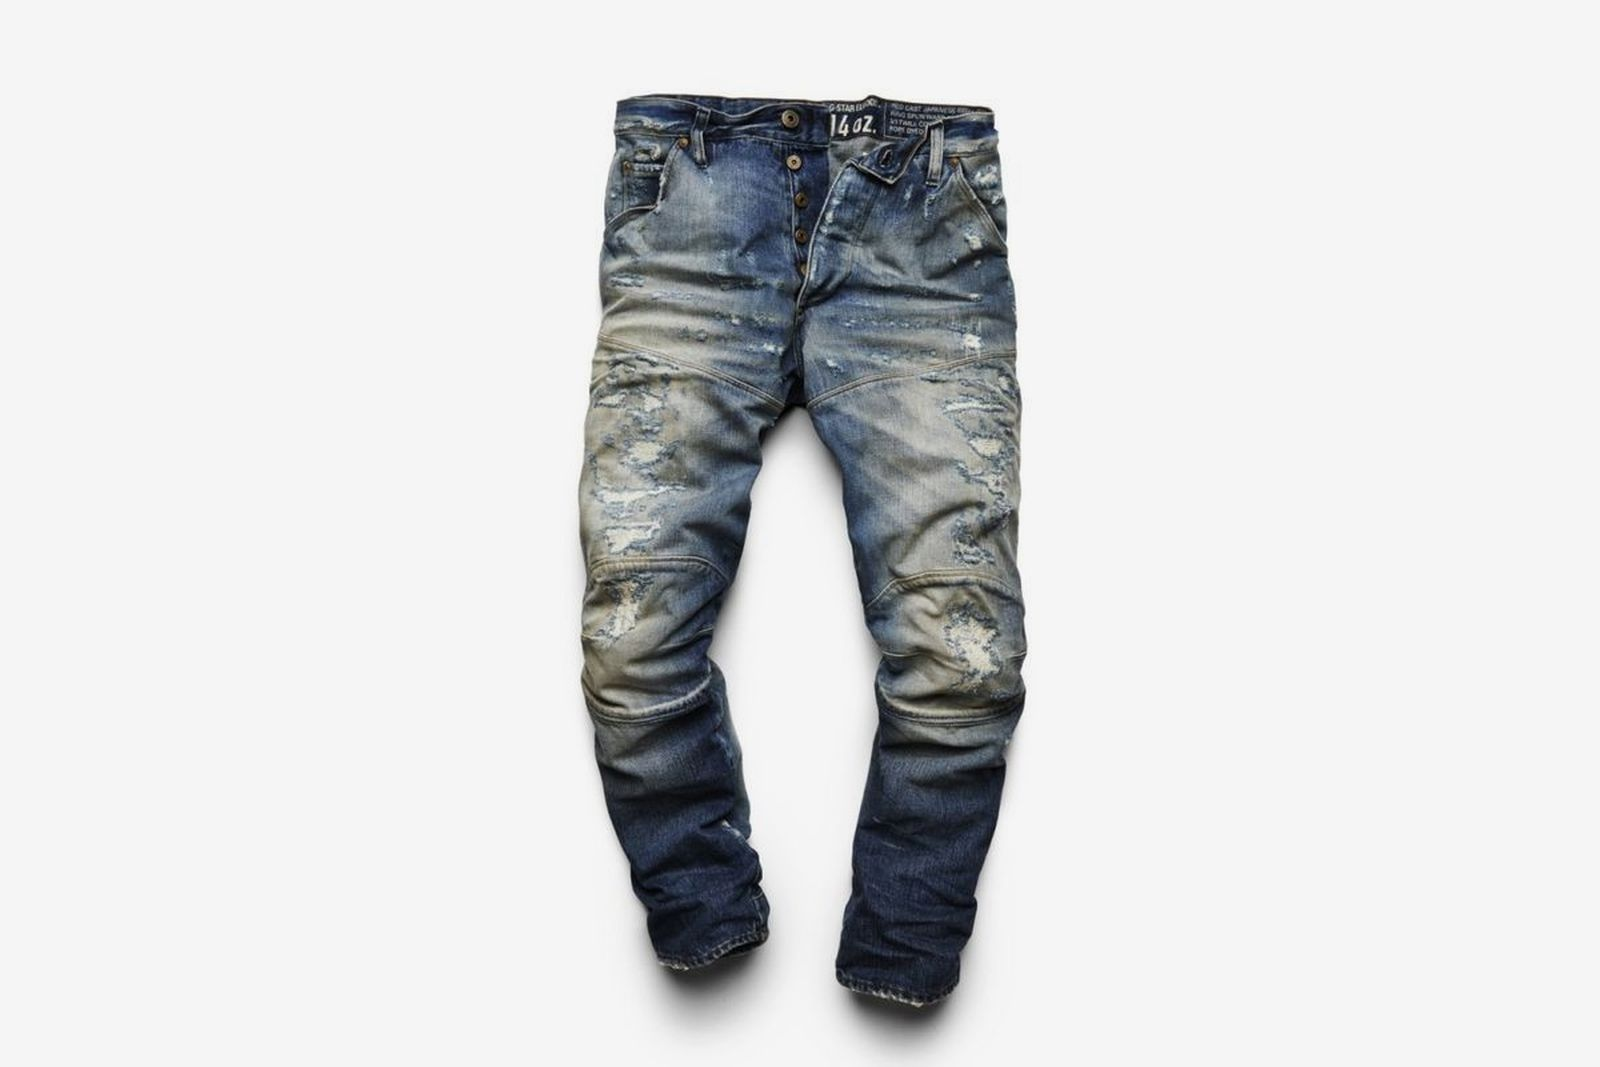 ripped-jeans-main